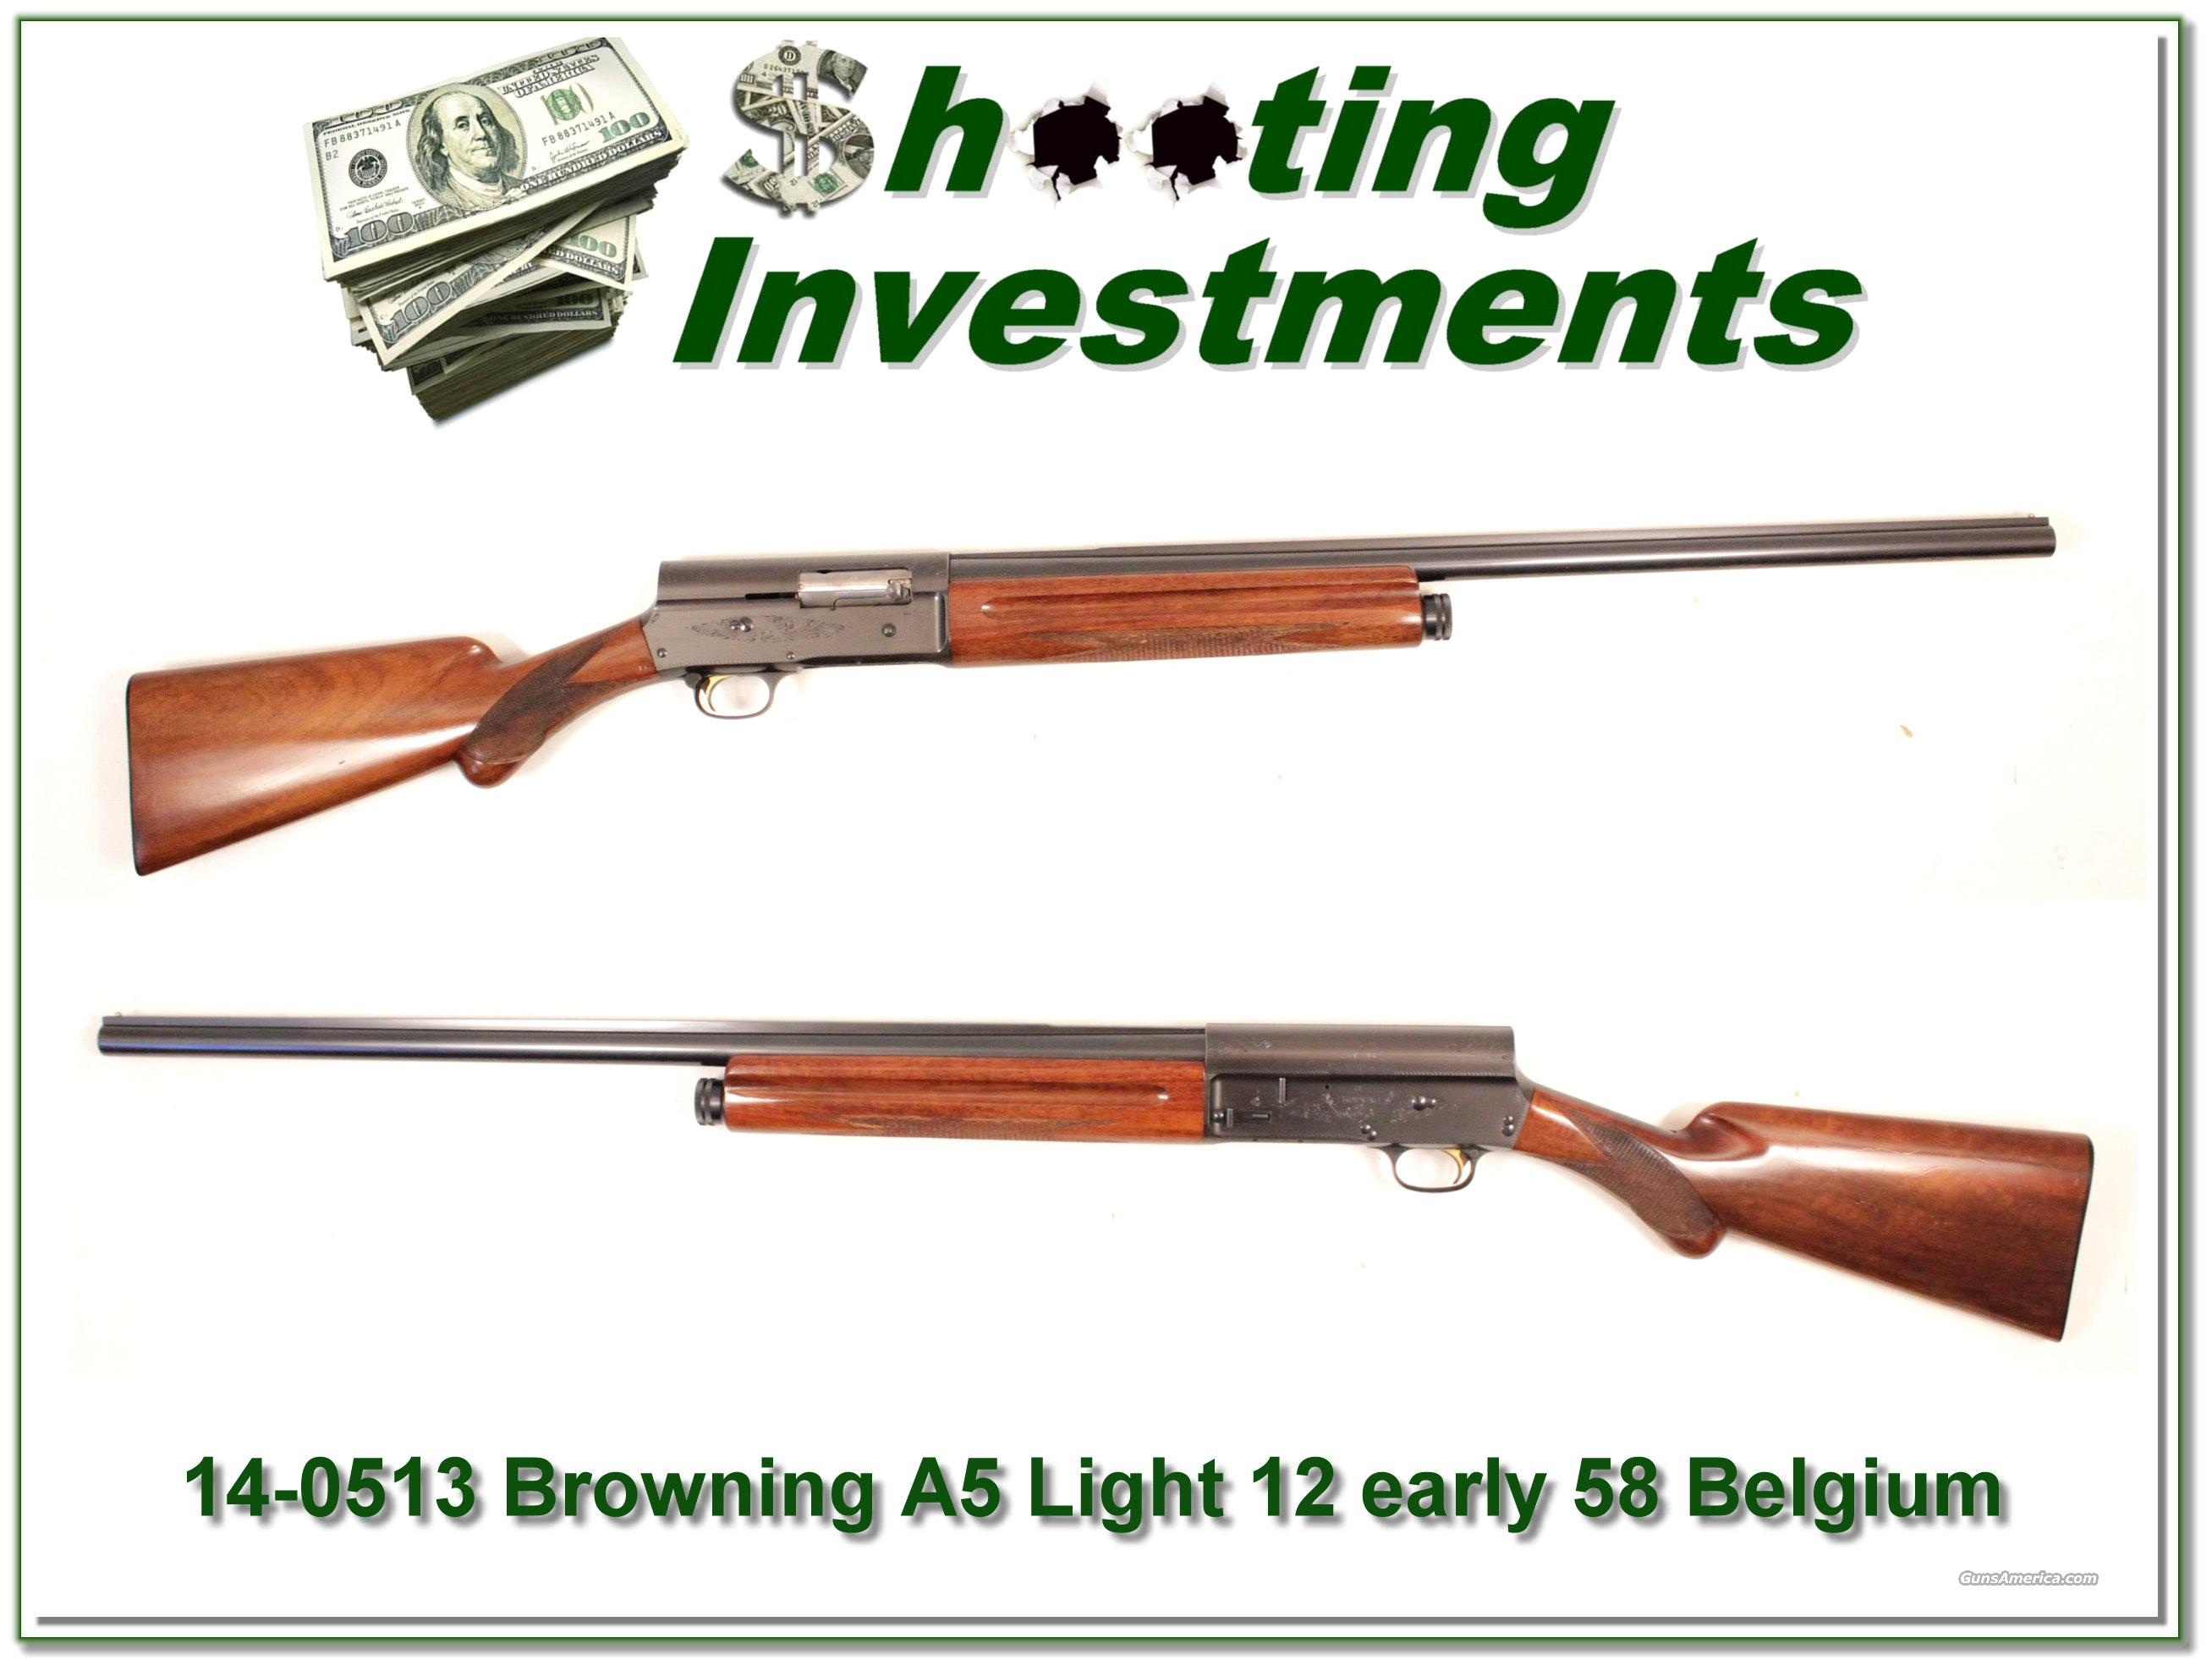 Browning A5 Light 12 58 Belgium  Guns > Shotguns > Browning Shotguns > Autoloaders > Hunting